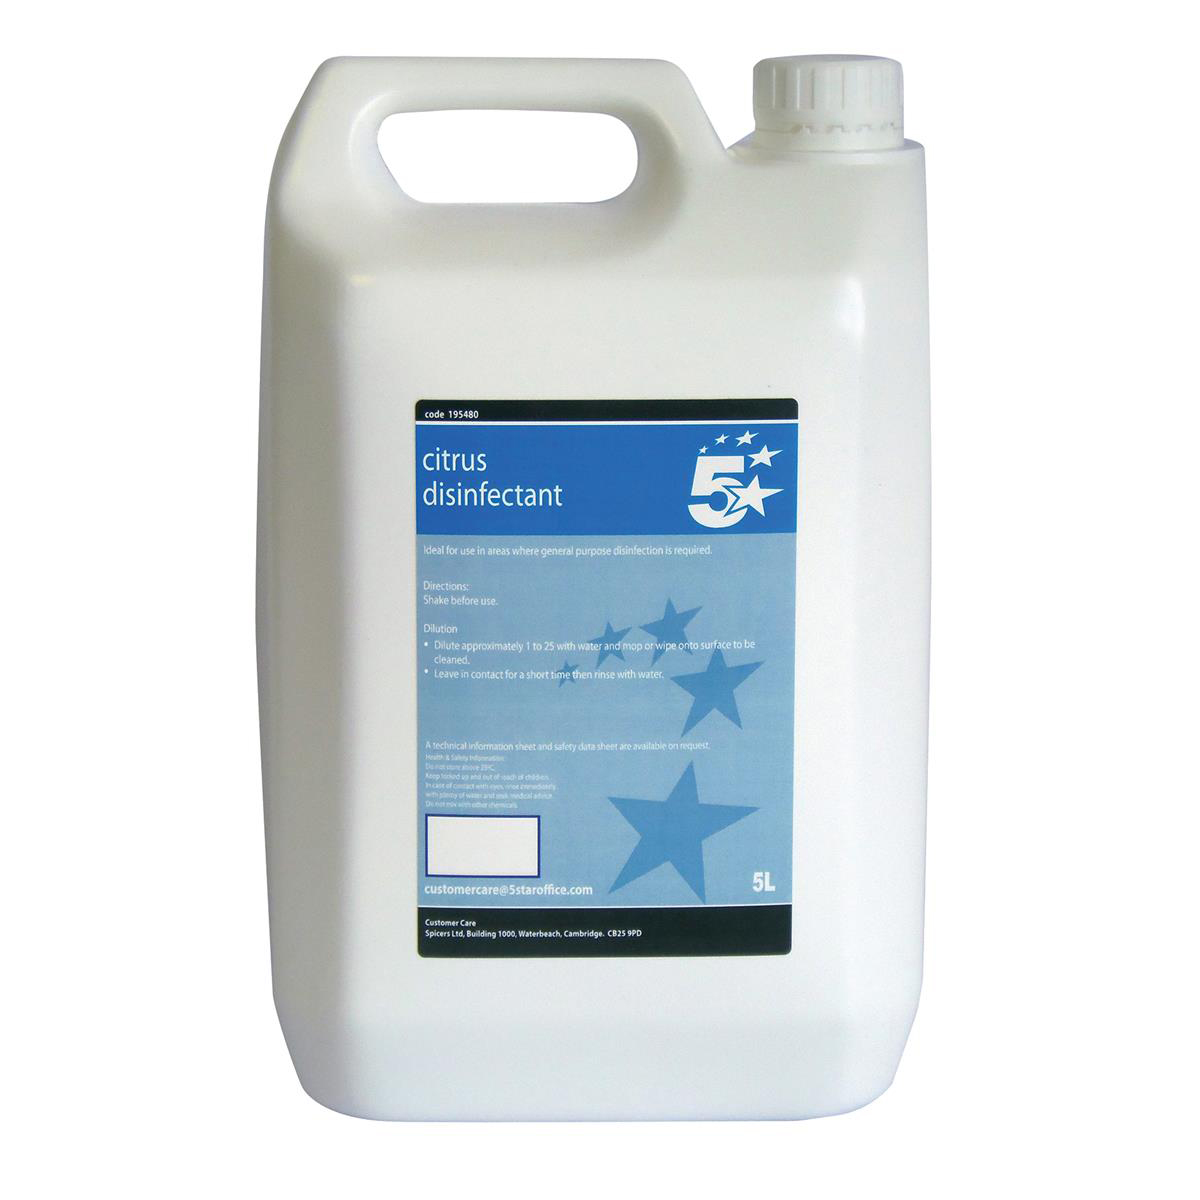 Disinfectant 5 Star Facilities Concentrated Citrus Disinfectant 5 Litres